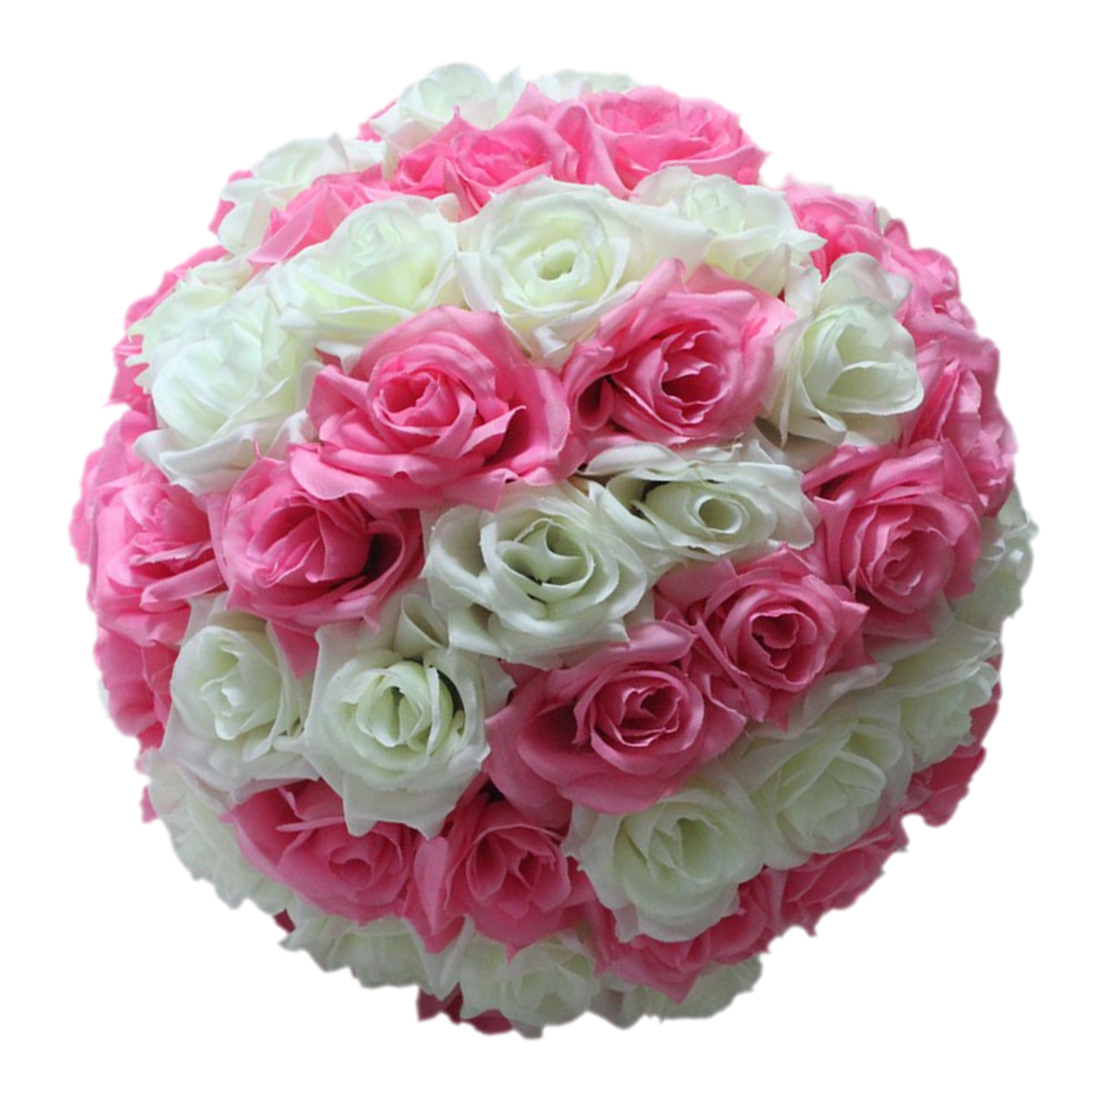 K9 8 wedding decorations artificial silk flower ball for Artificial flowers for wedding decoration